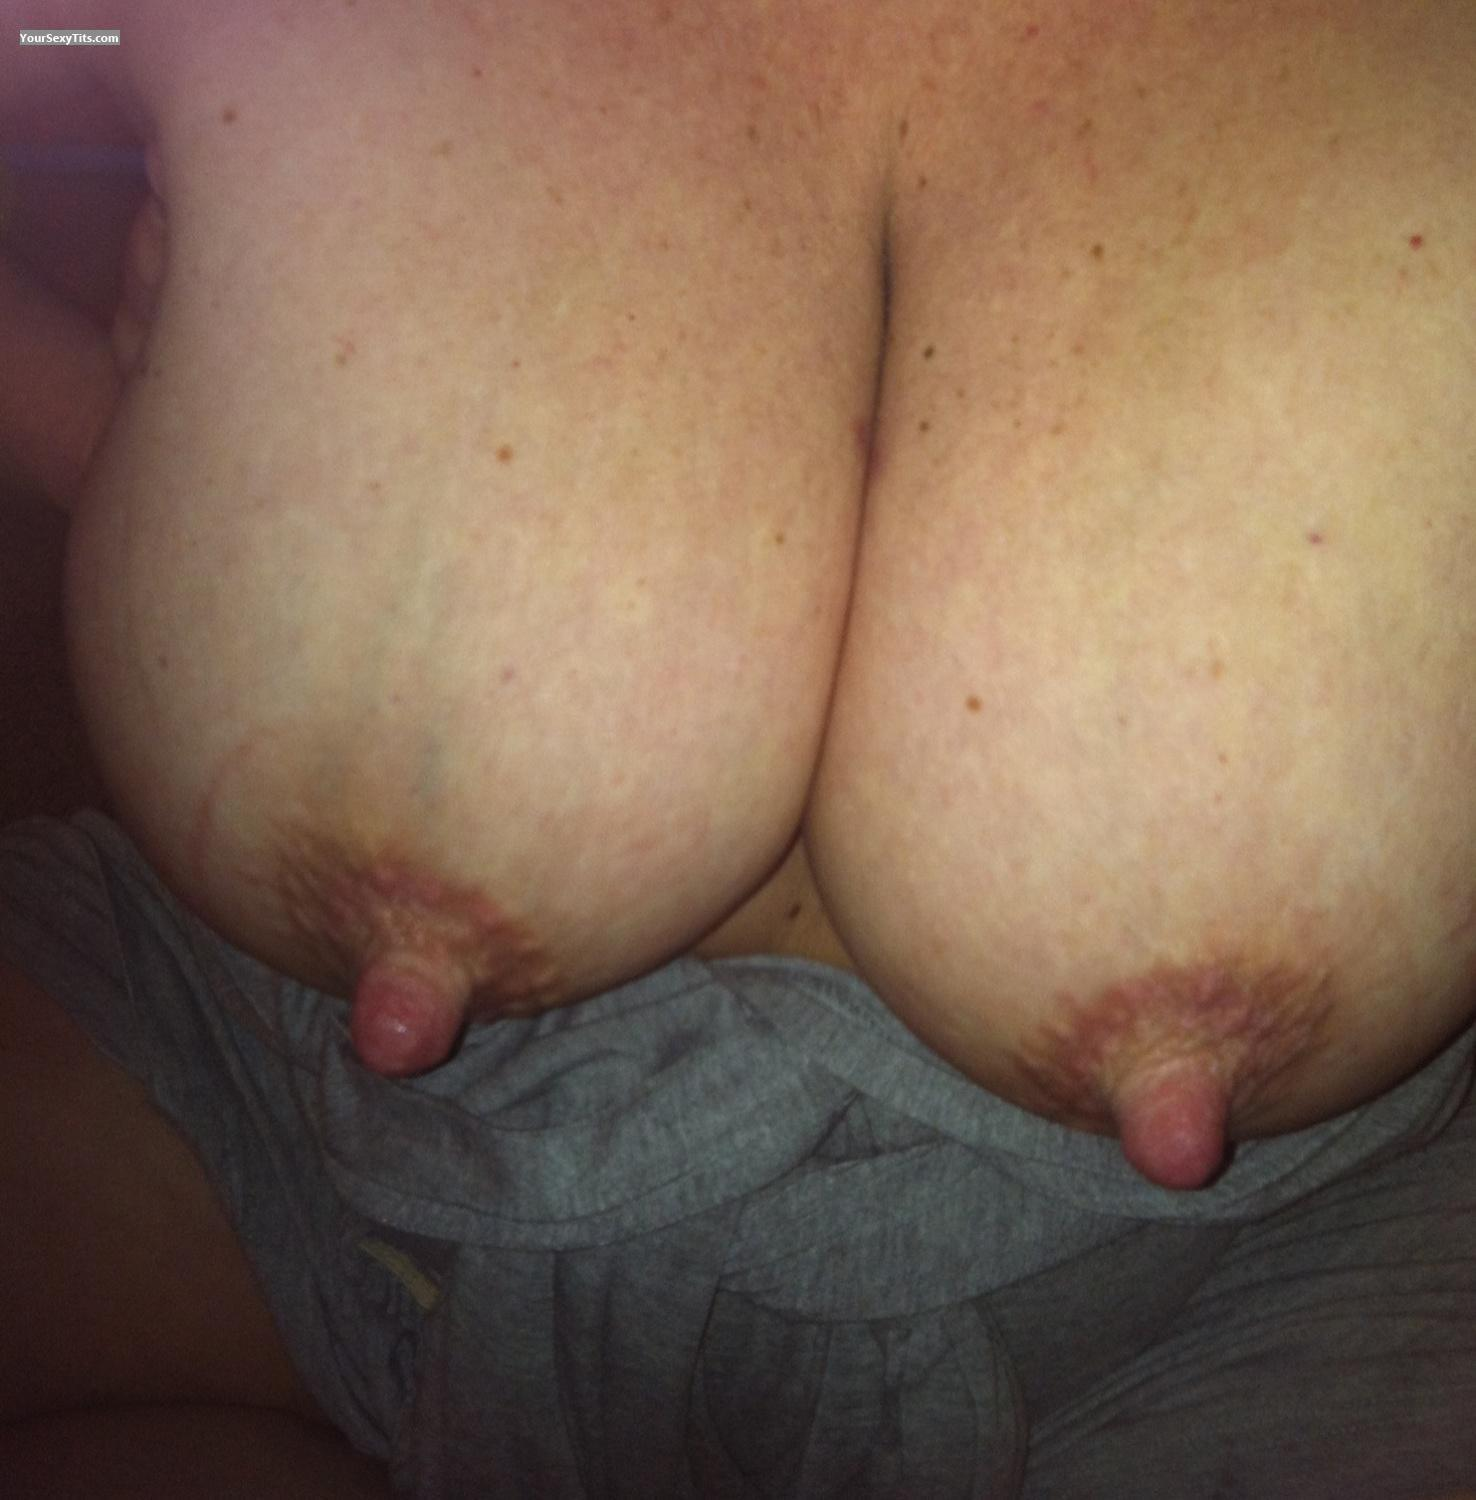 Tit Flash: Very Big Tits By IPhone - 41 Y/o Milf from United States